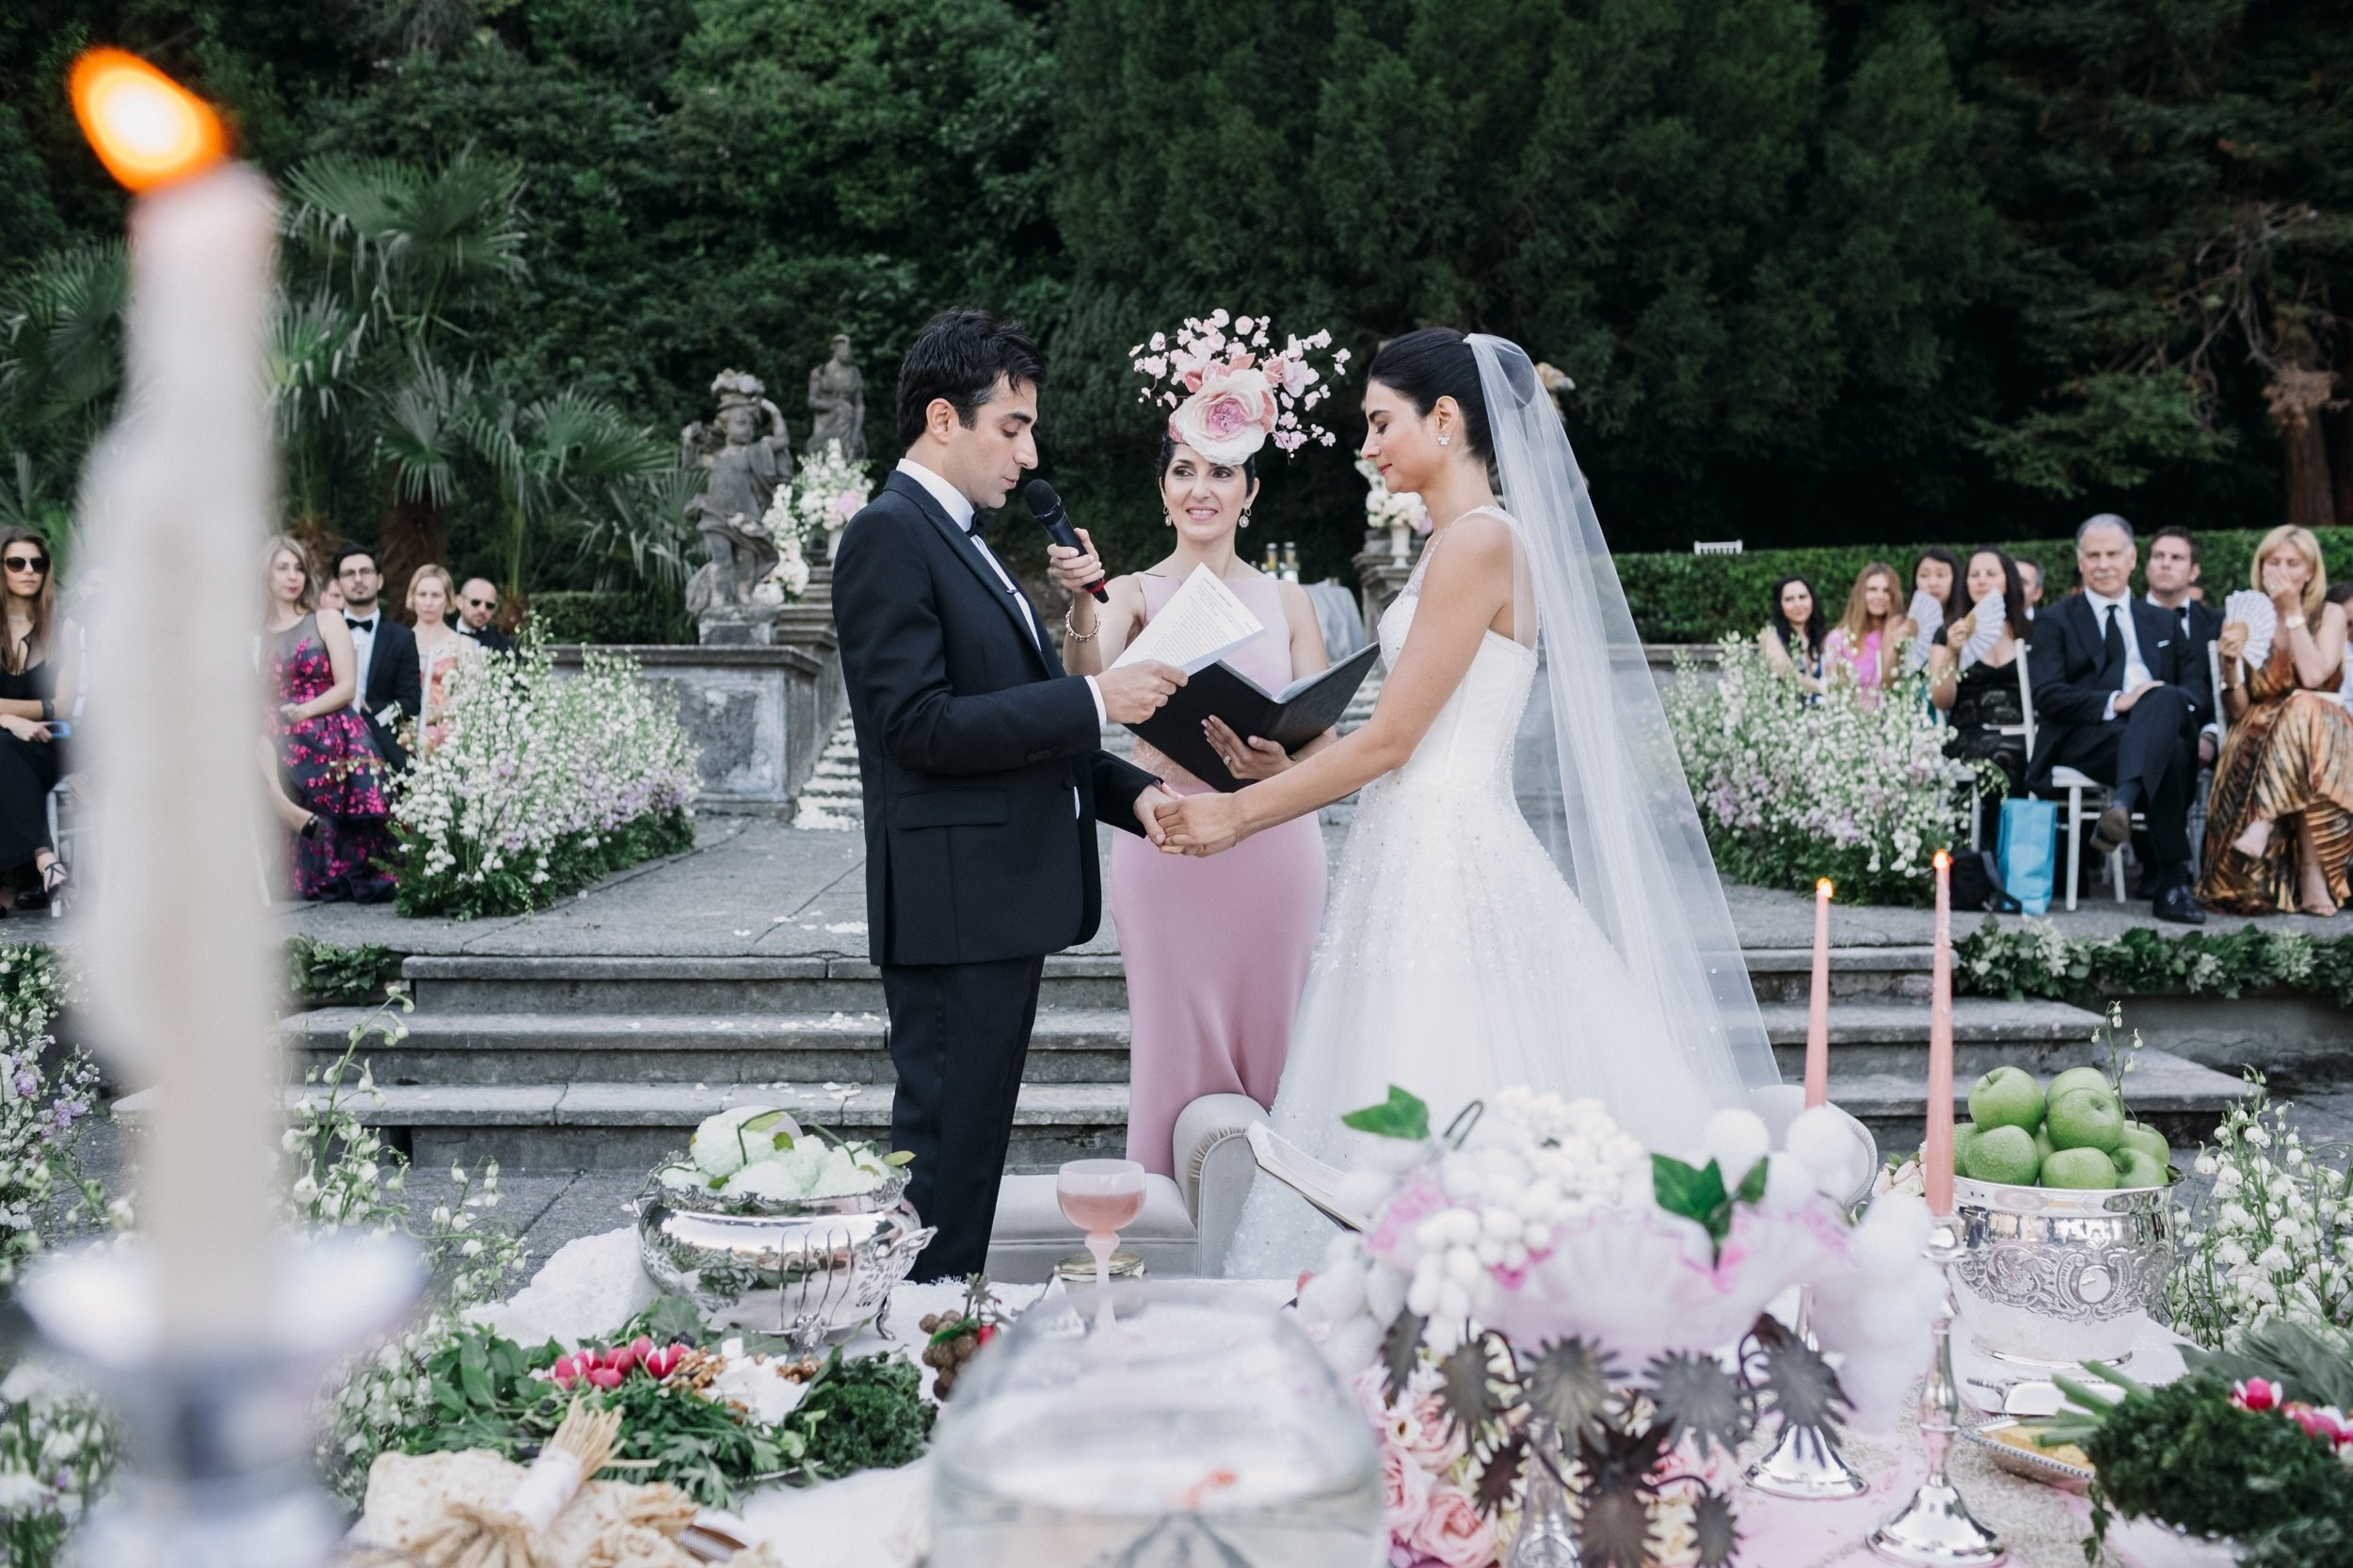 Officiant Services - Our team includes experienced officiants who will work with you and your partner to create a unique and memorable service for your wedding. Your ceremony will be a reflection and celebration of your backgrounds, families and story of love. Visit our SERVICES page for more details.